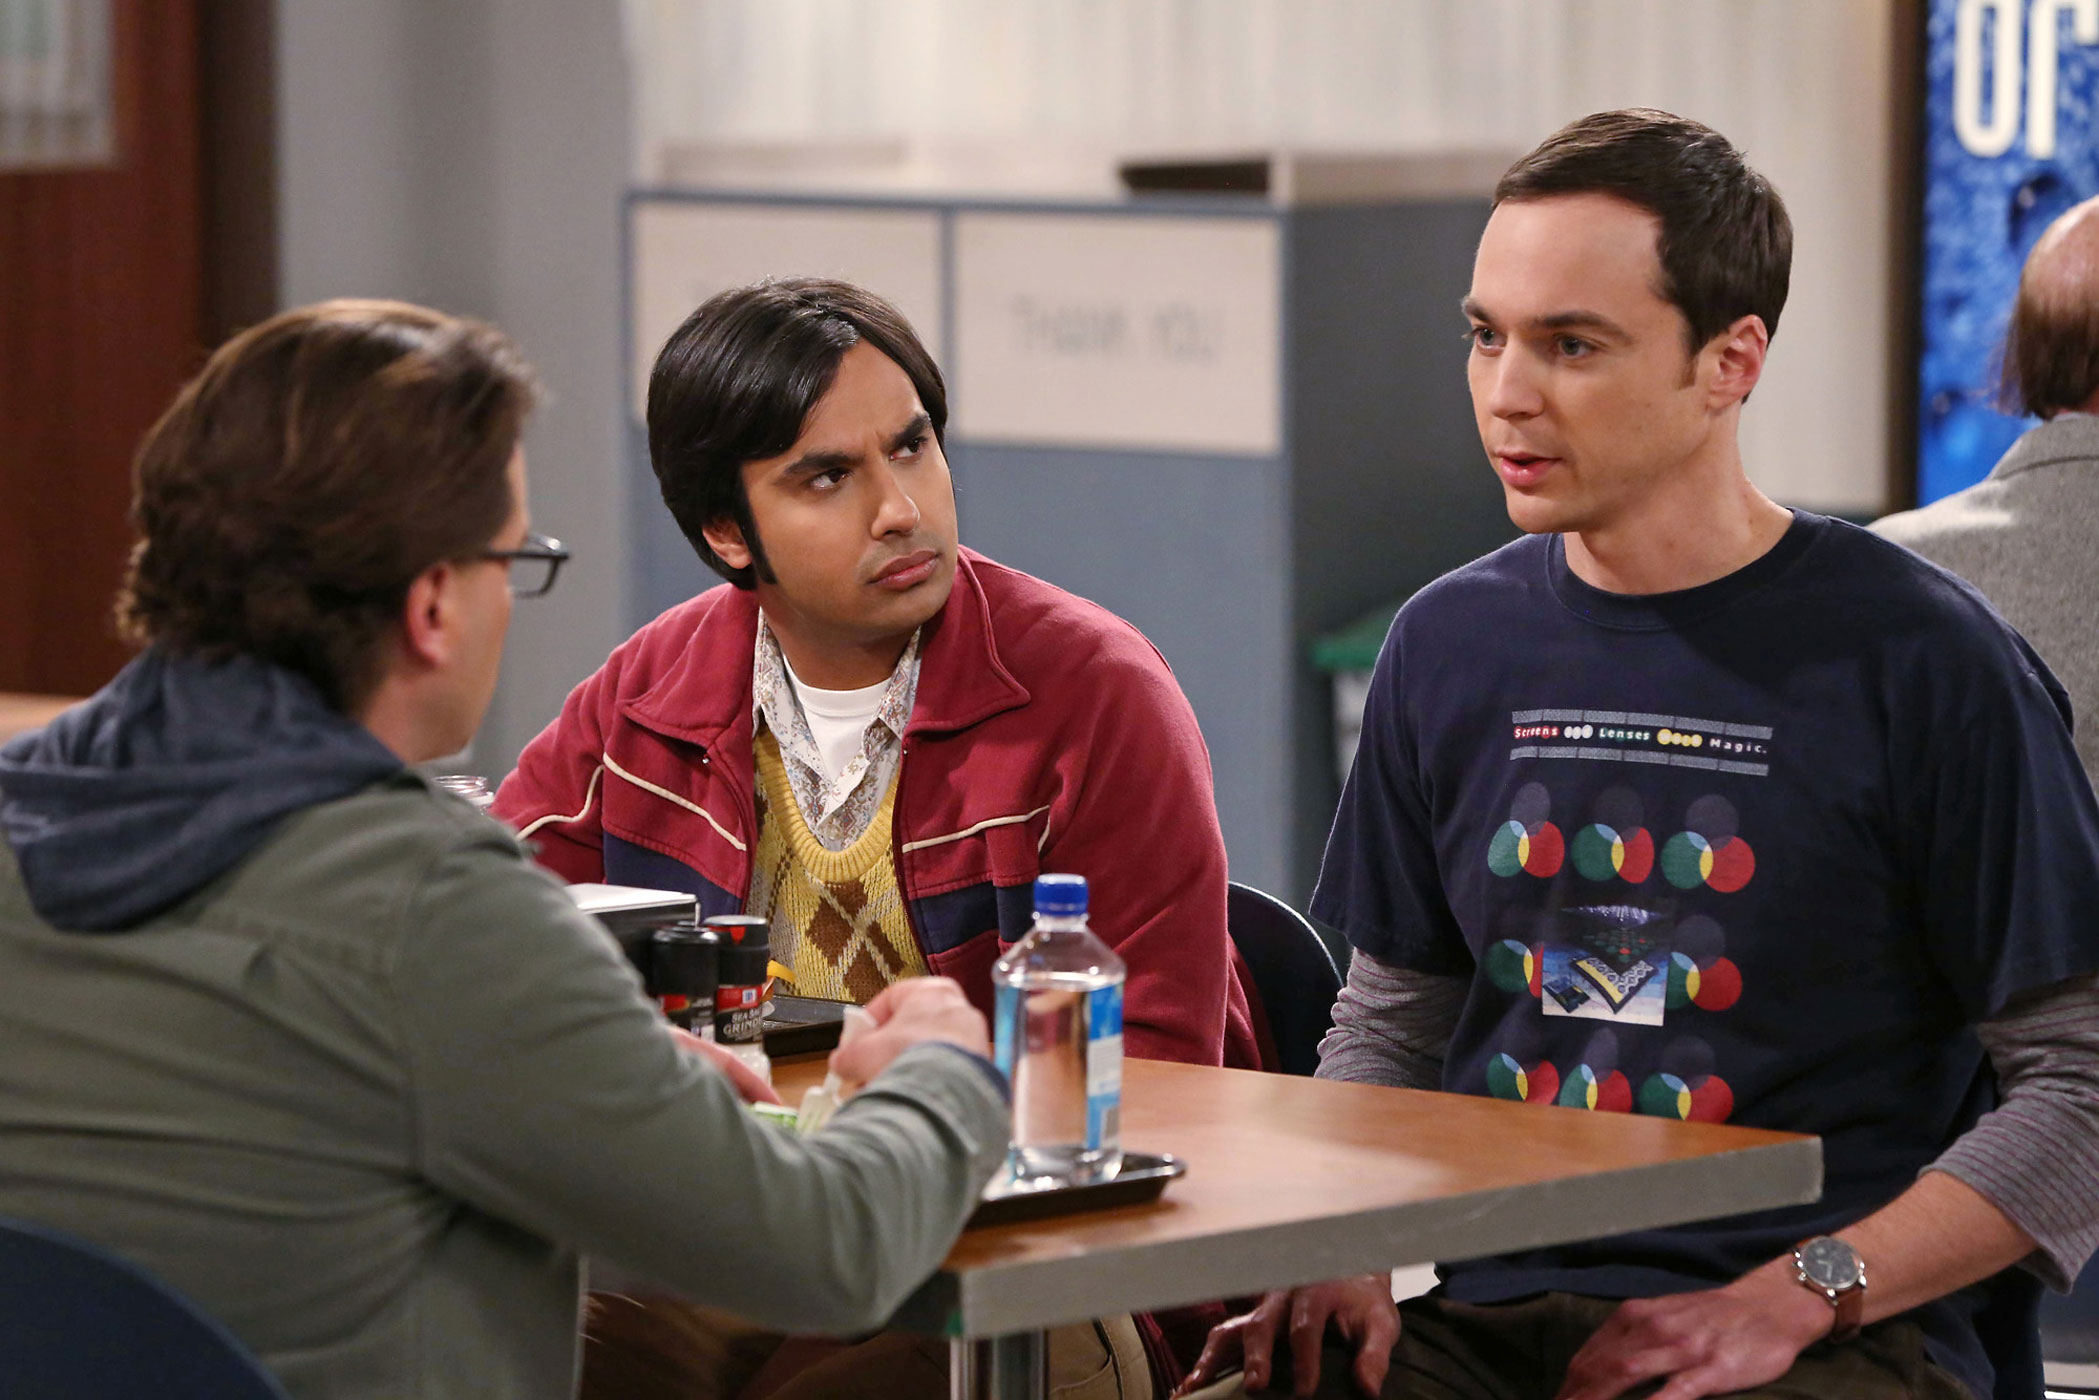 3. The Big Bang Theory (CBS) - 94,794 average users pirating worldwide per day